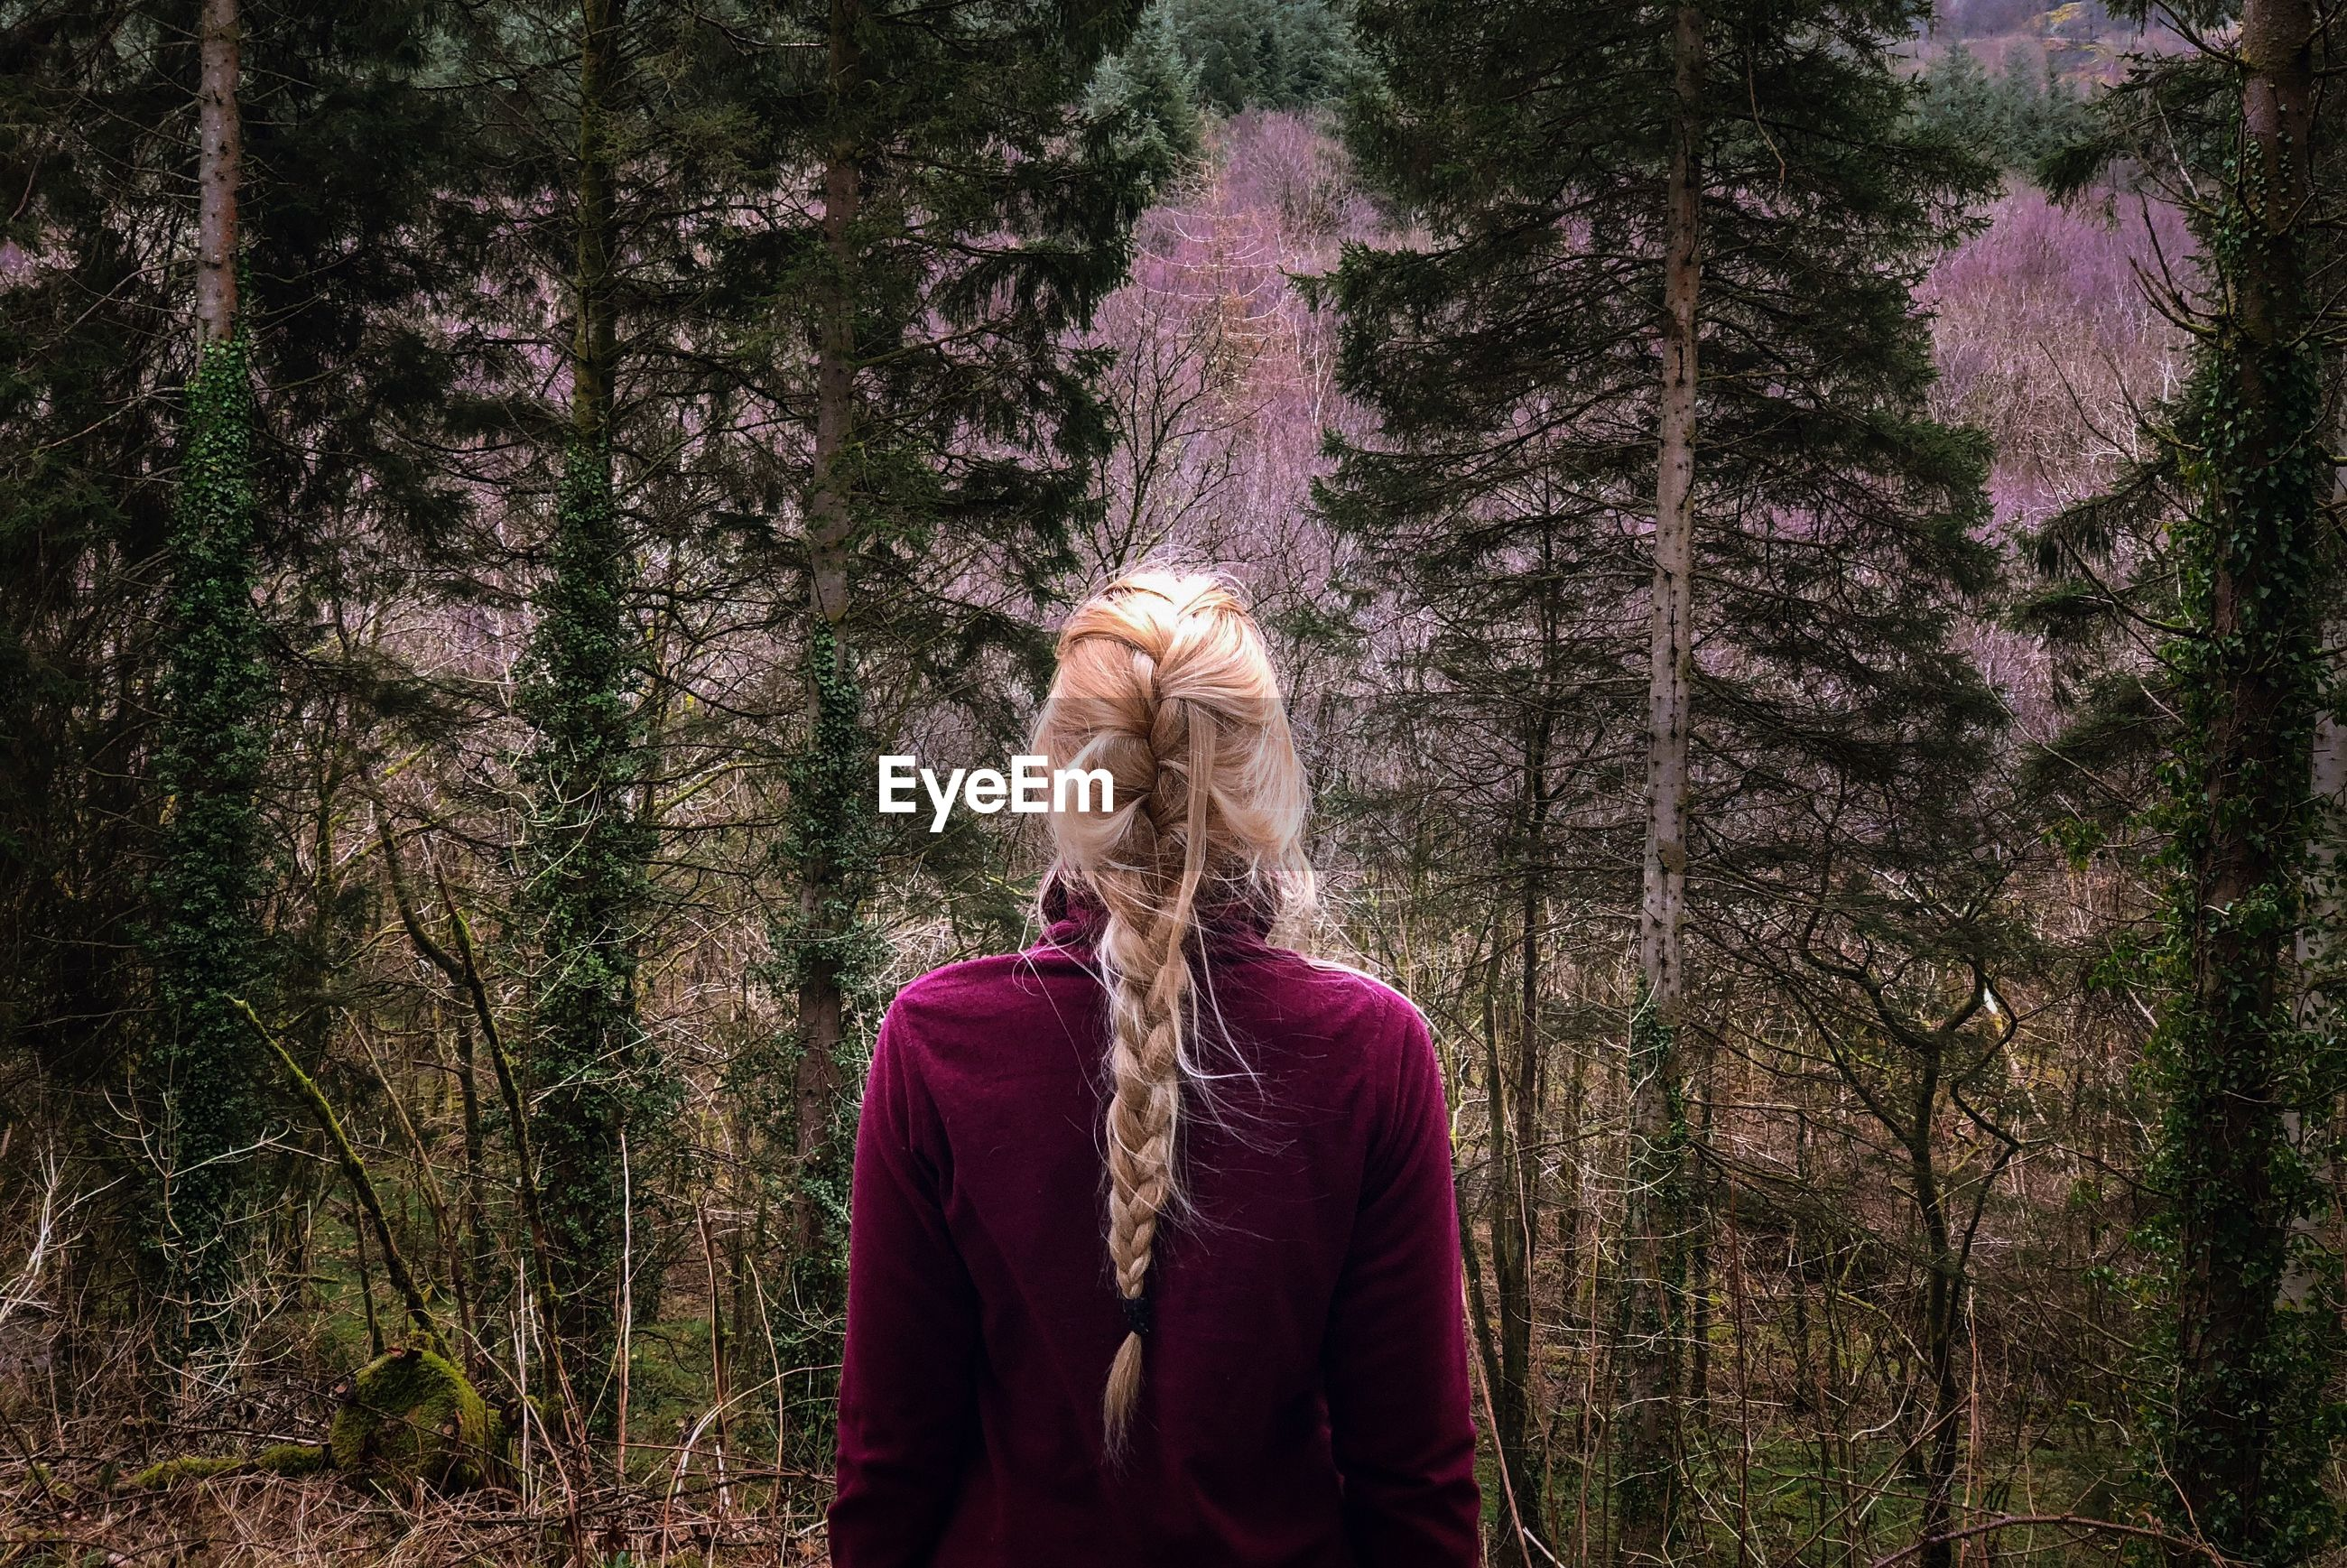 Woman with braided hair standing in forest